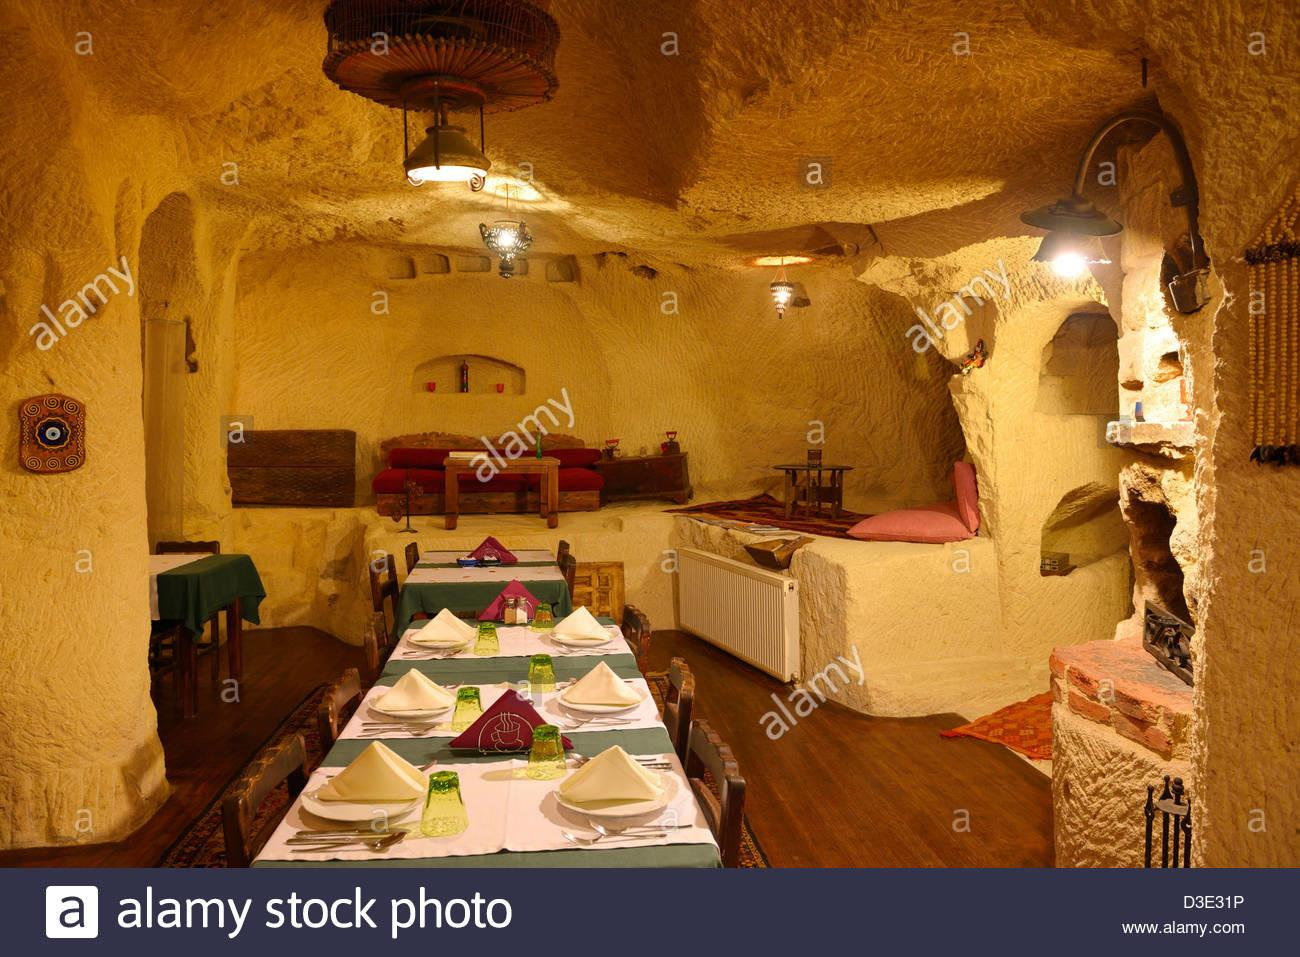 Interior Urgup Evi Rock House Cave Hotel Dining Room